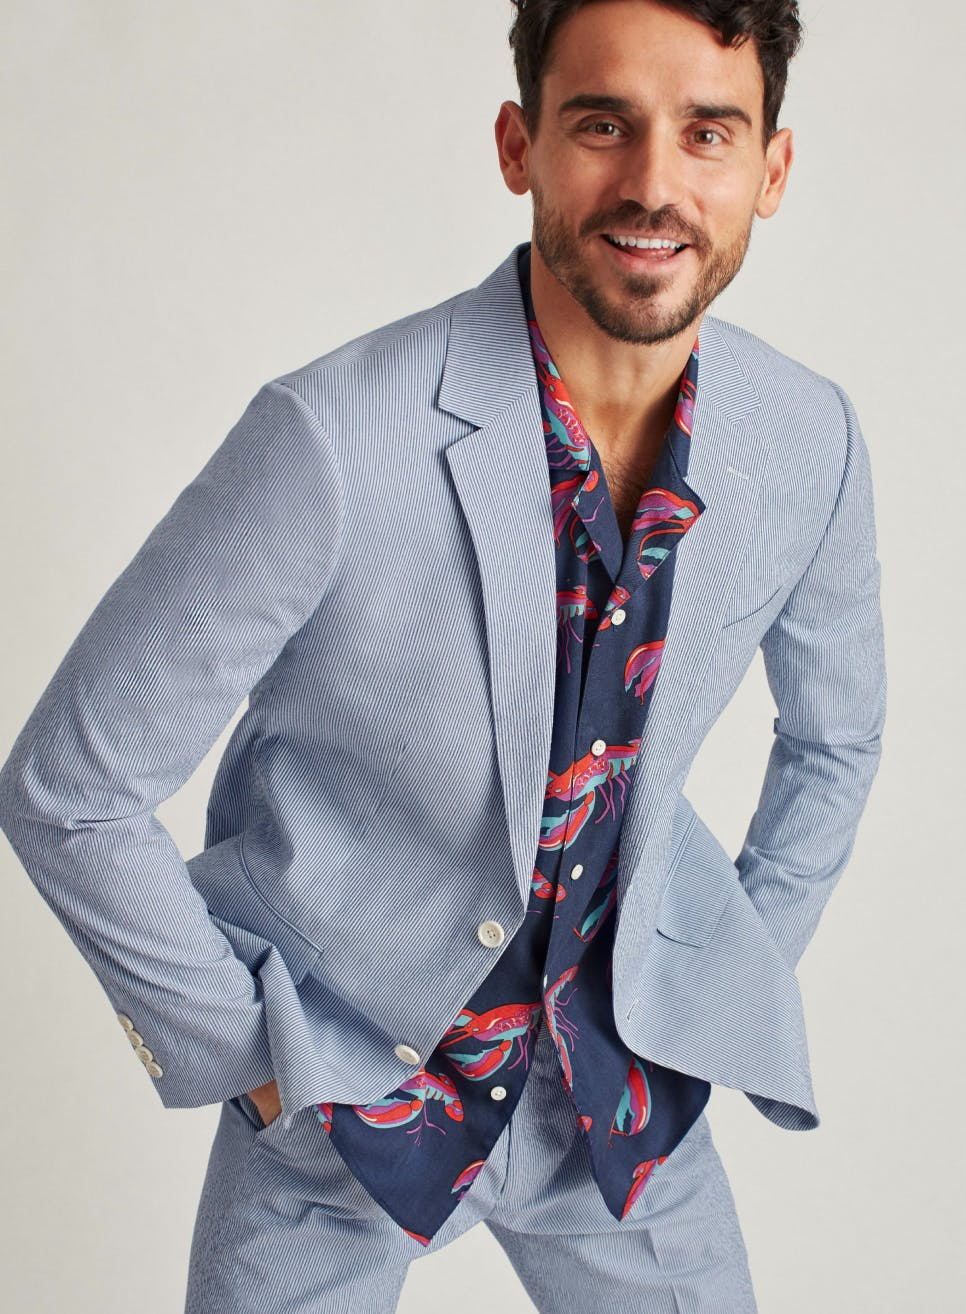 Image of model in lightweight suit with casual lobster shirt